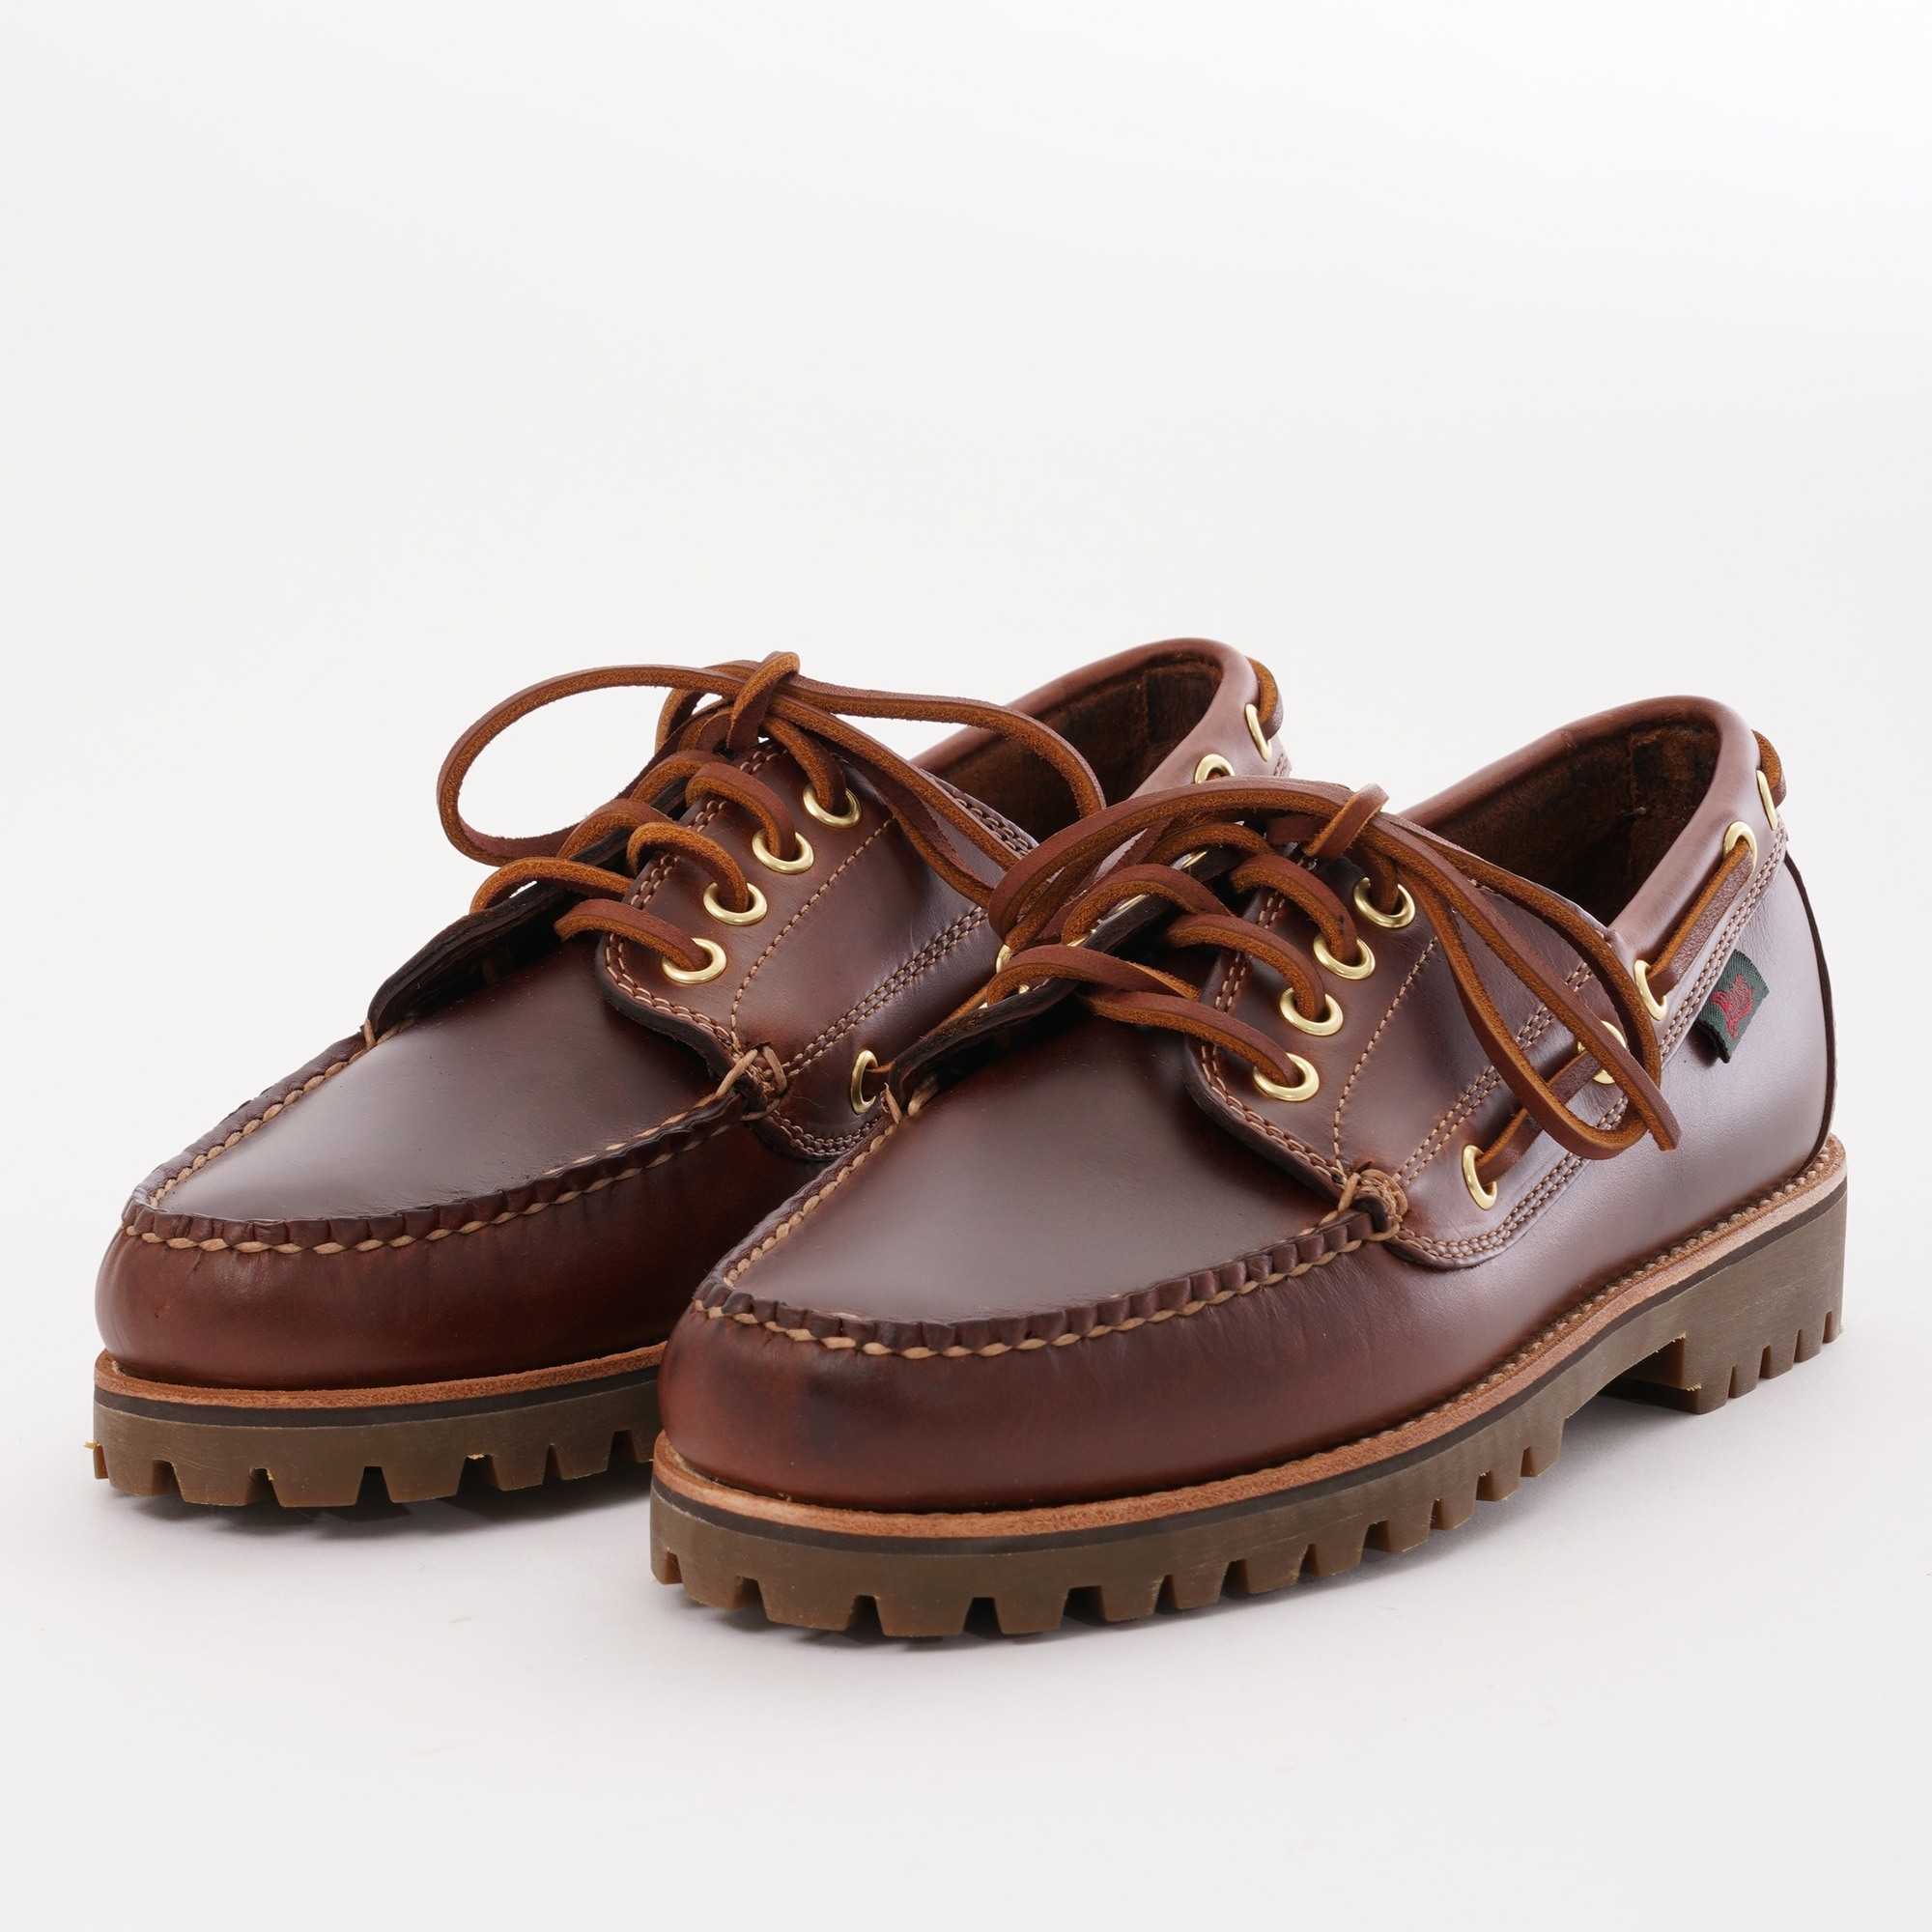 a1f53c710d4 Ranger Moc II Lo Shoes - Dark Brown Leather